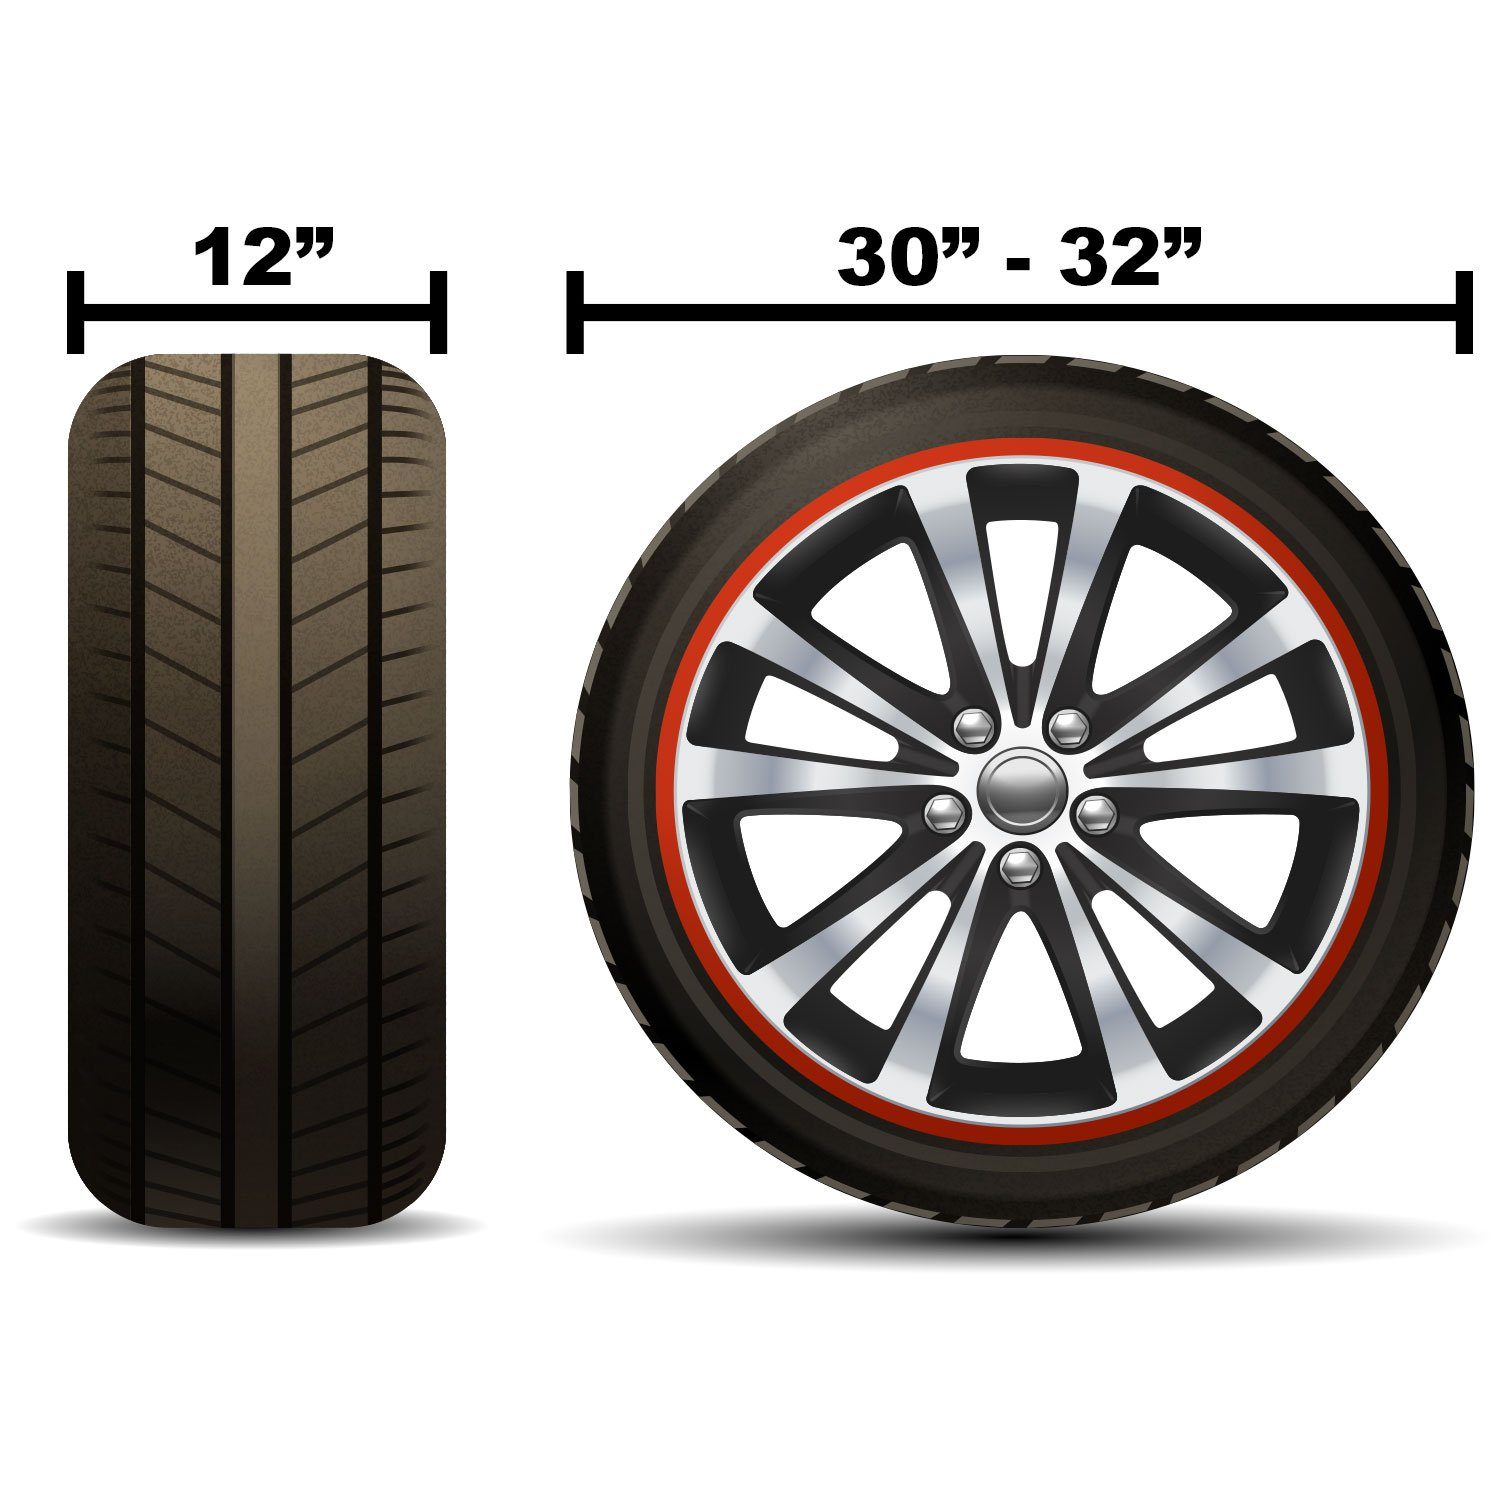 TCP Global Set of 4 - Oxford Waterproof Canvas Wheel Tire Covers, Fits from 30'' up to 32'' Diameter Tire Sizes by TCP Global (Image #3)